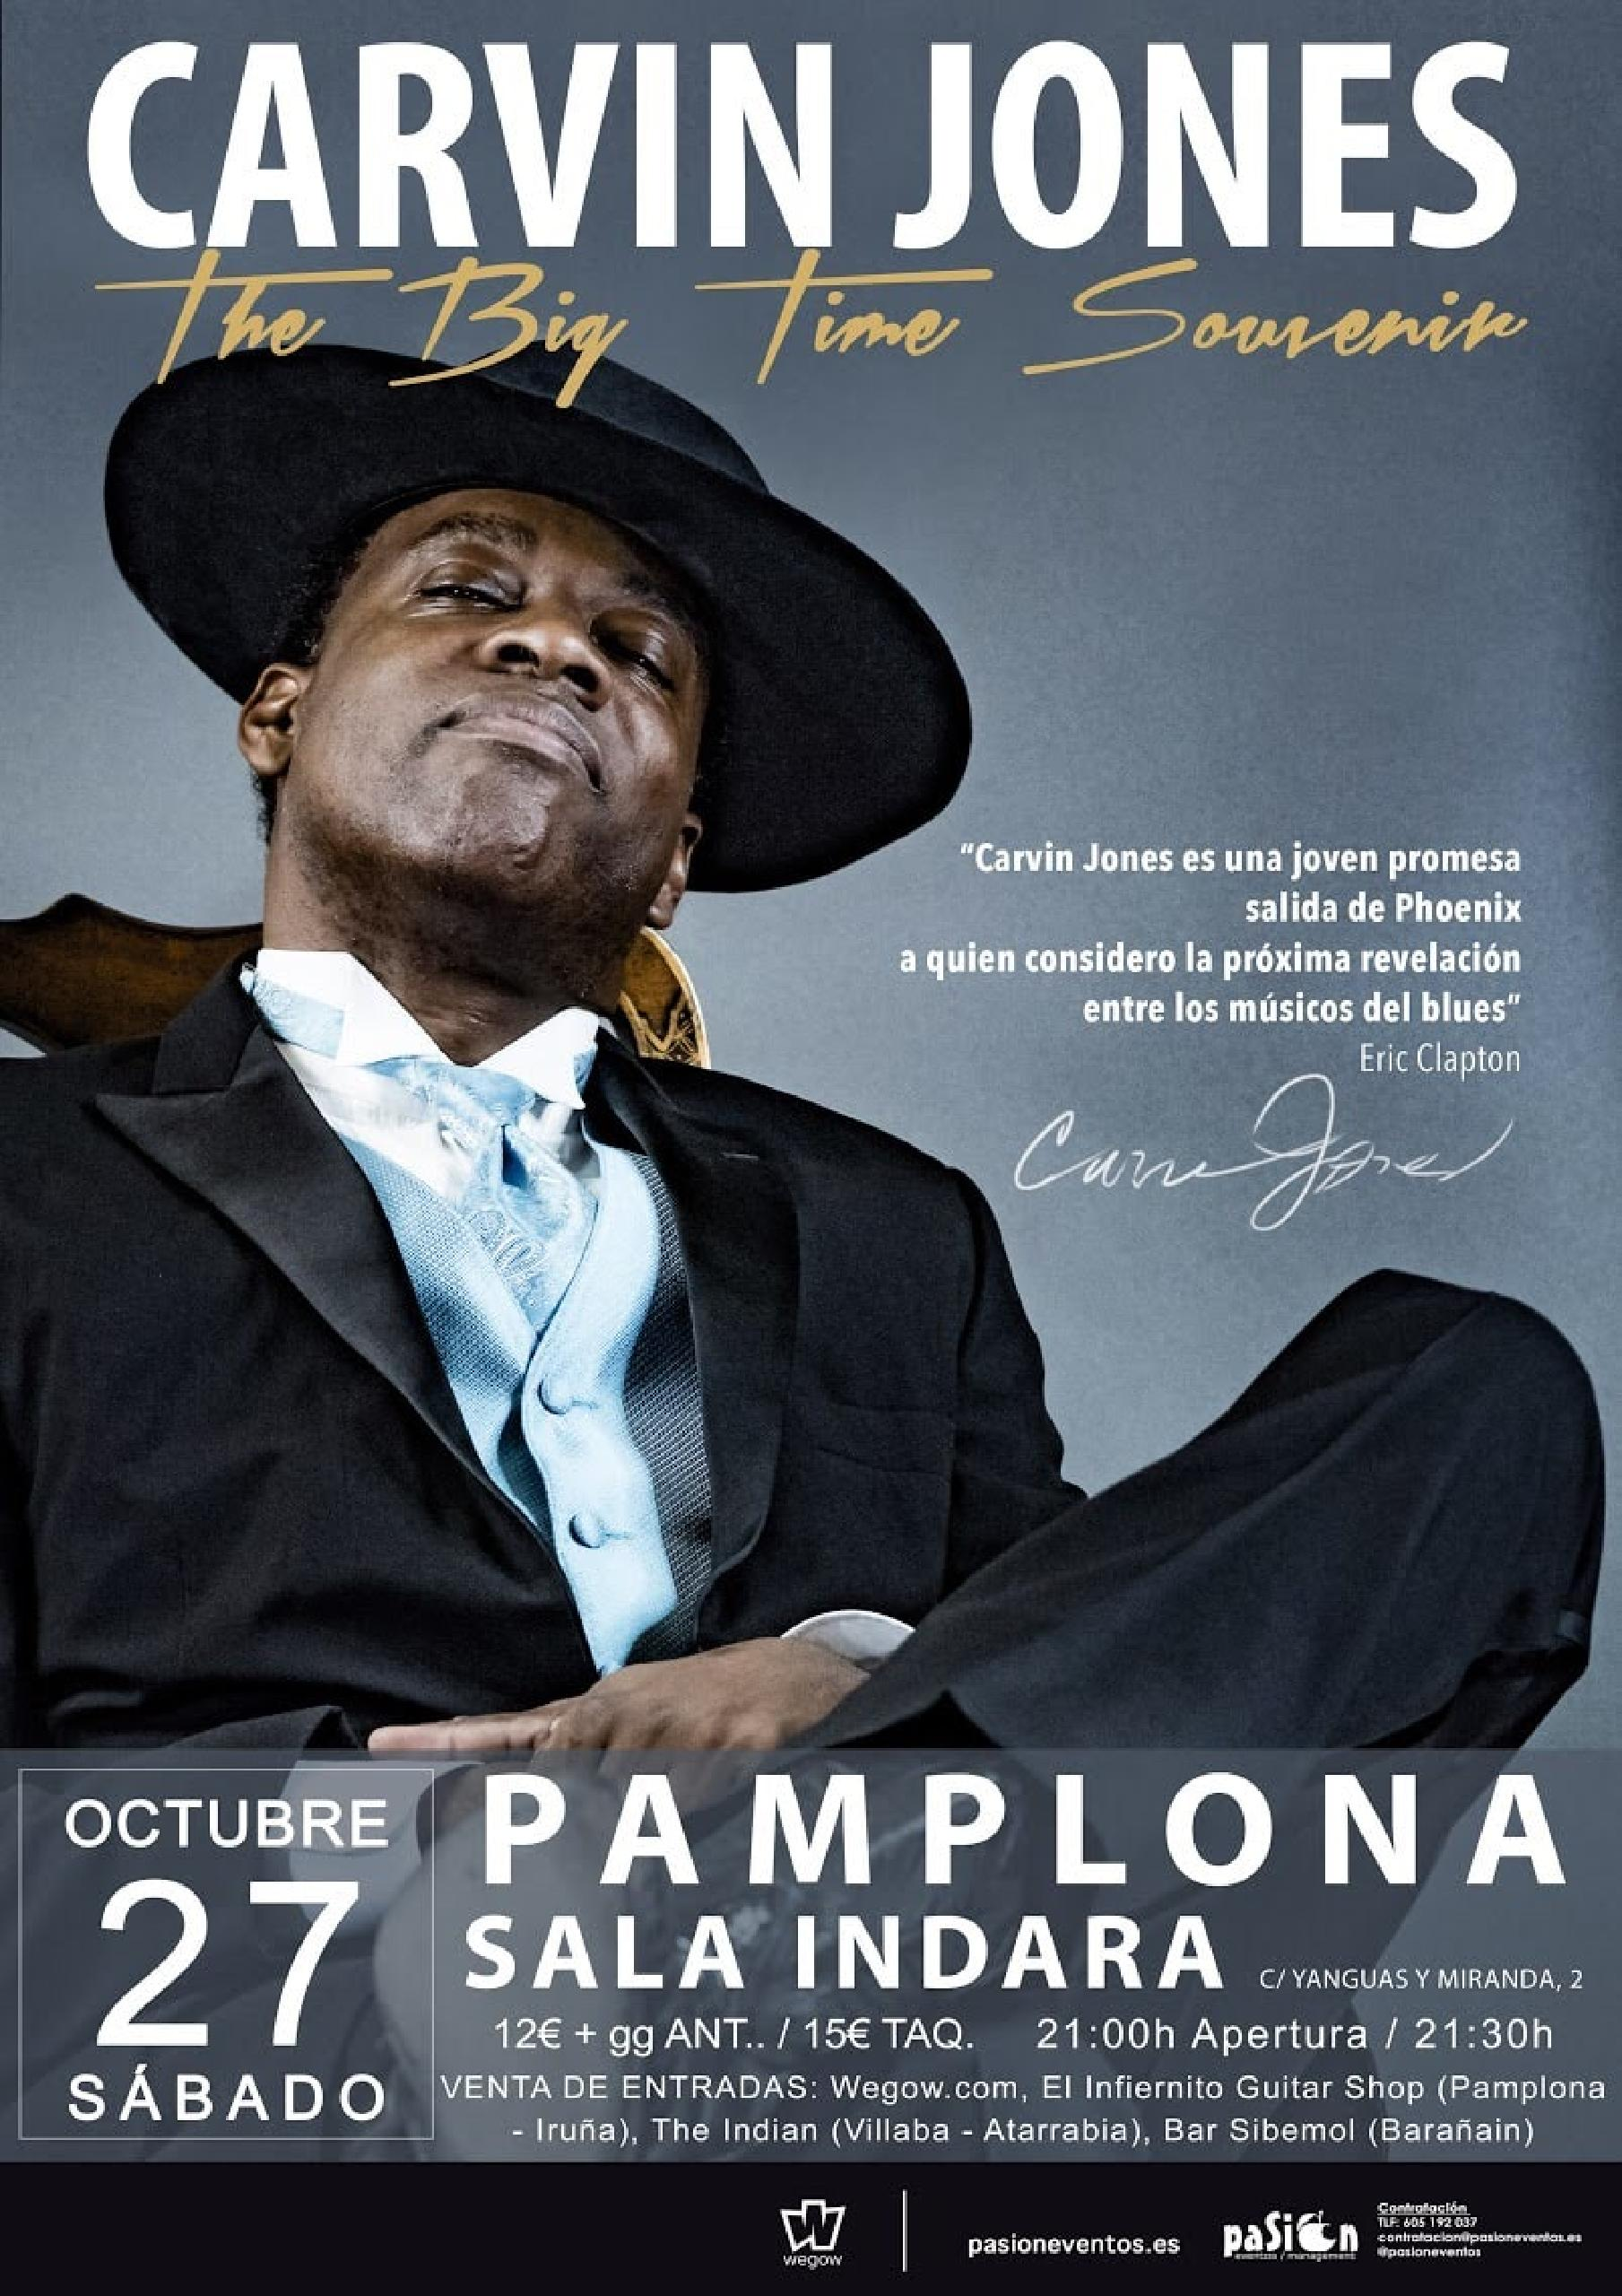 concierto de Carvin Jones en Pamplona